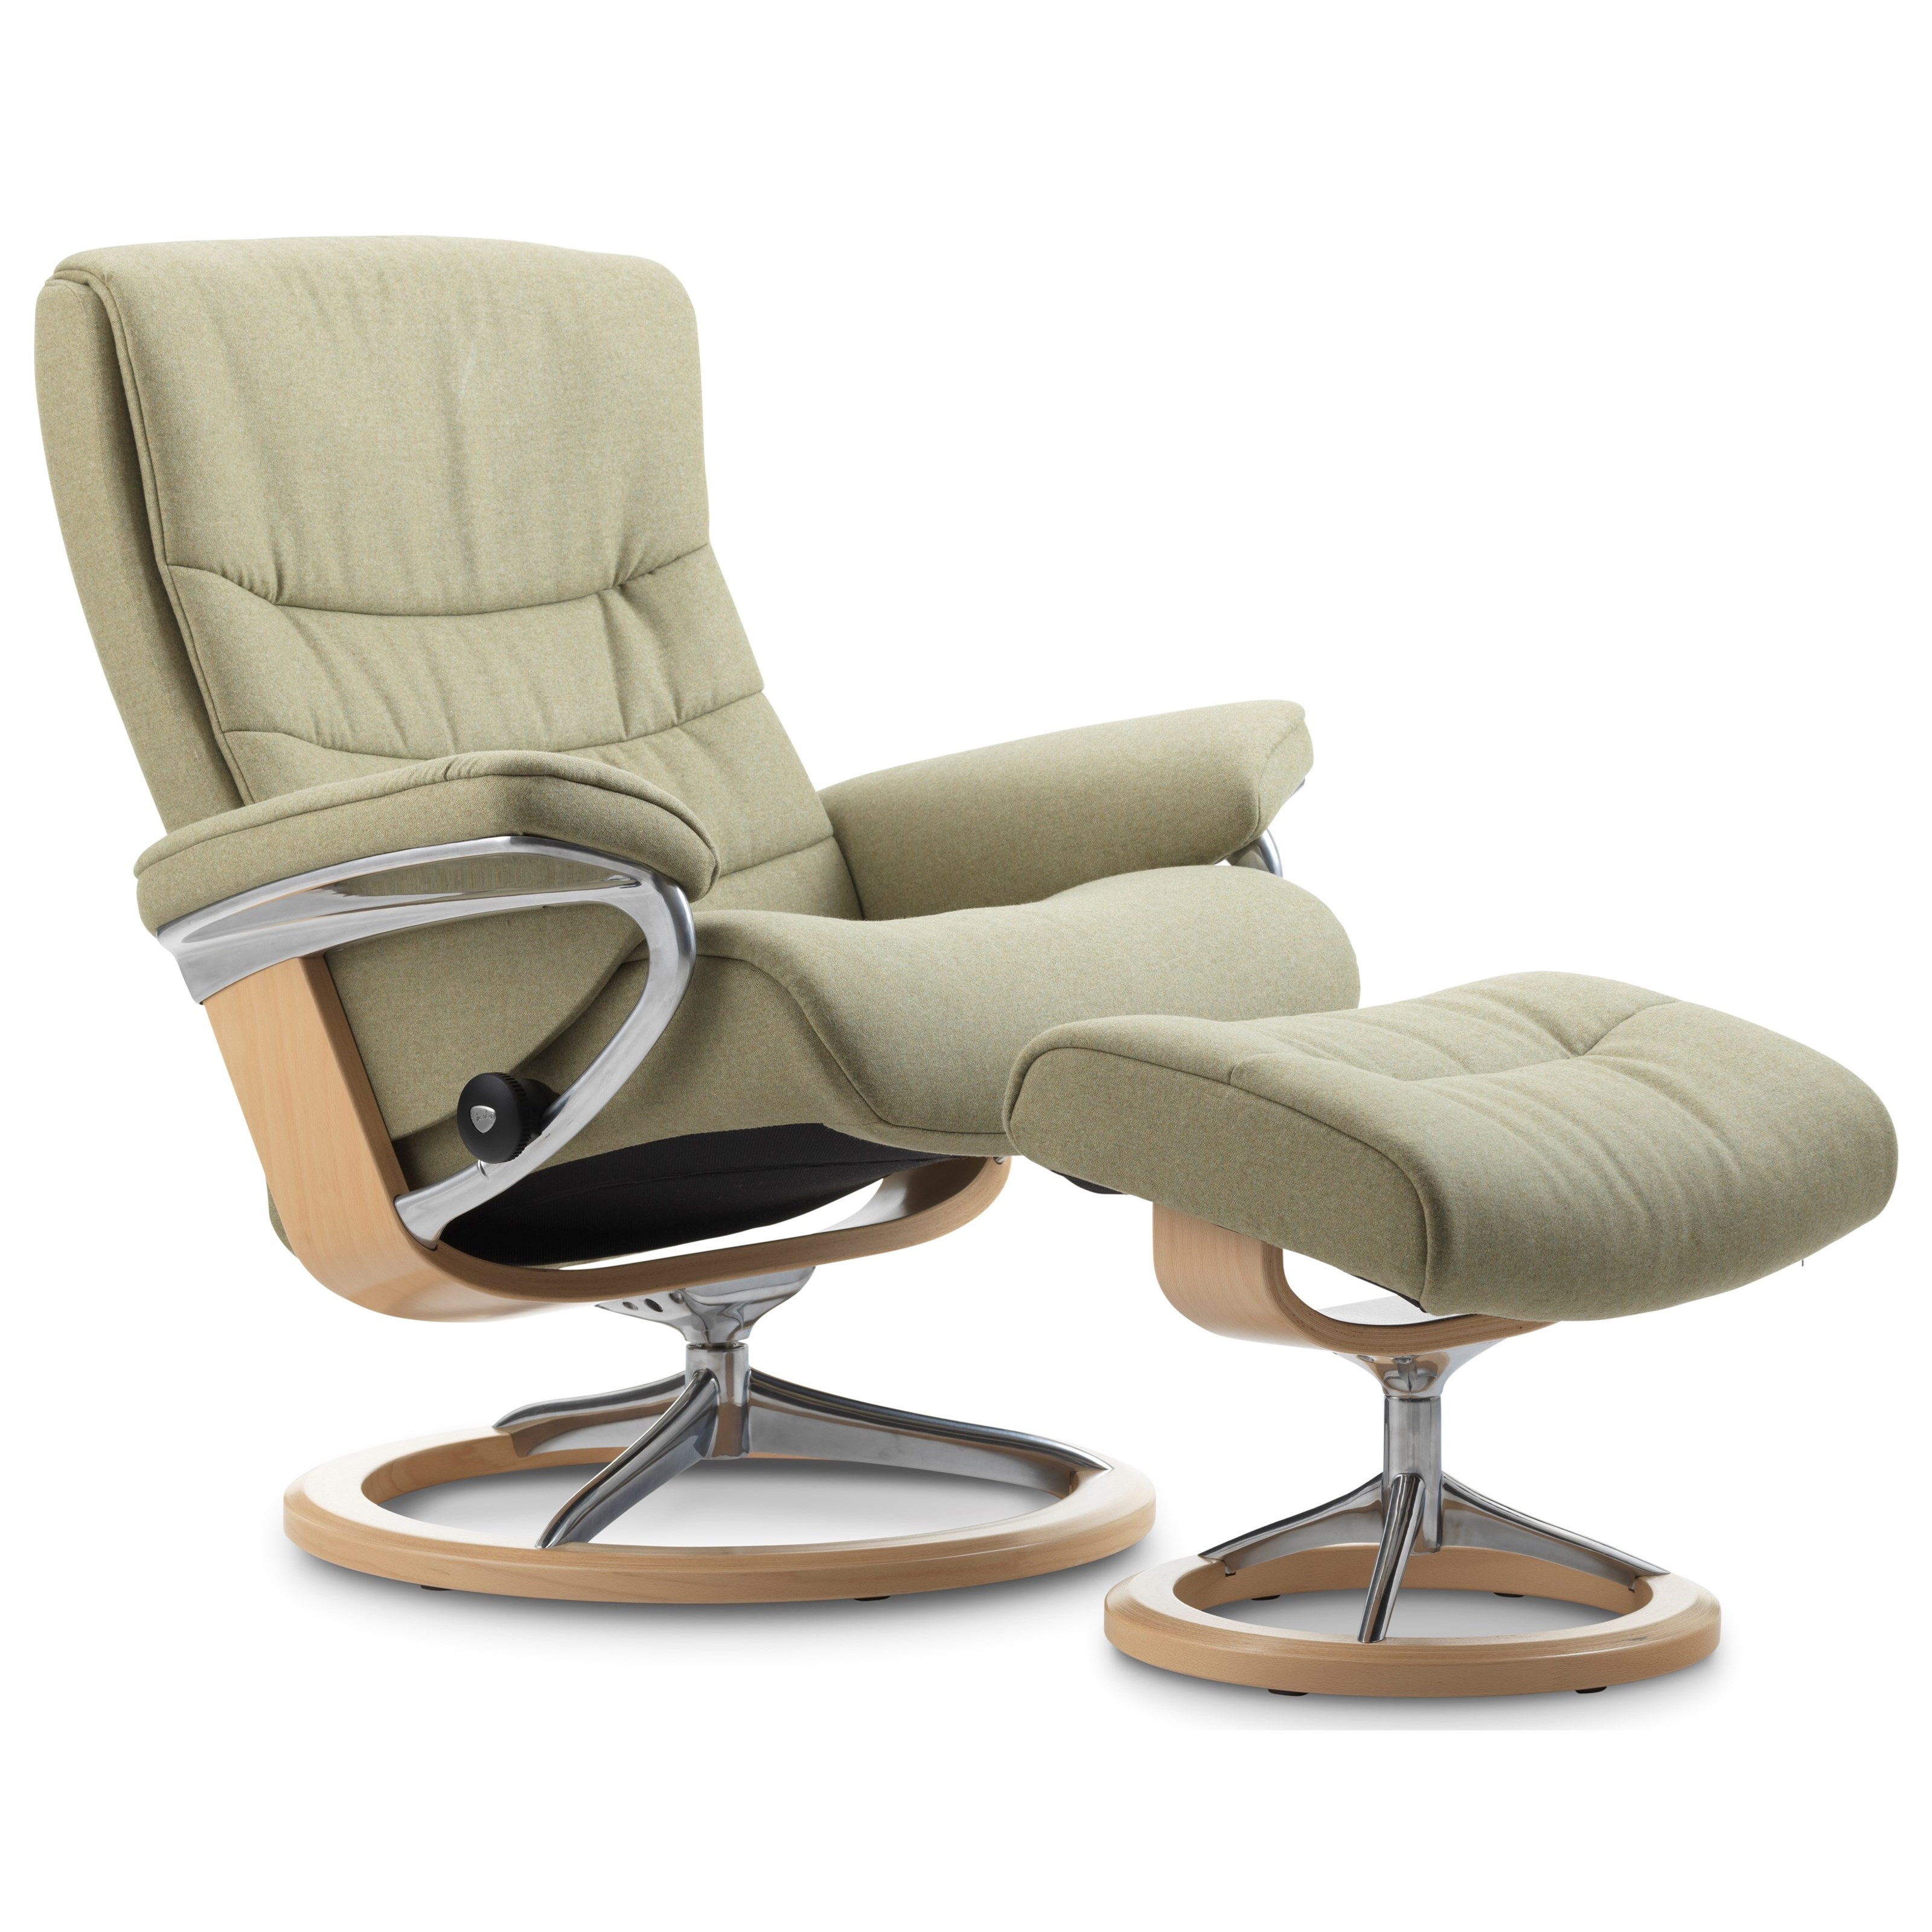 Stressless Nordic Medium Chair U0026 Ottoman With Signature Base   Item Number:  1283310 Calido